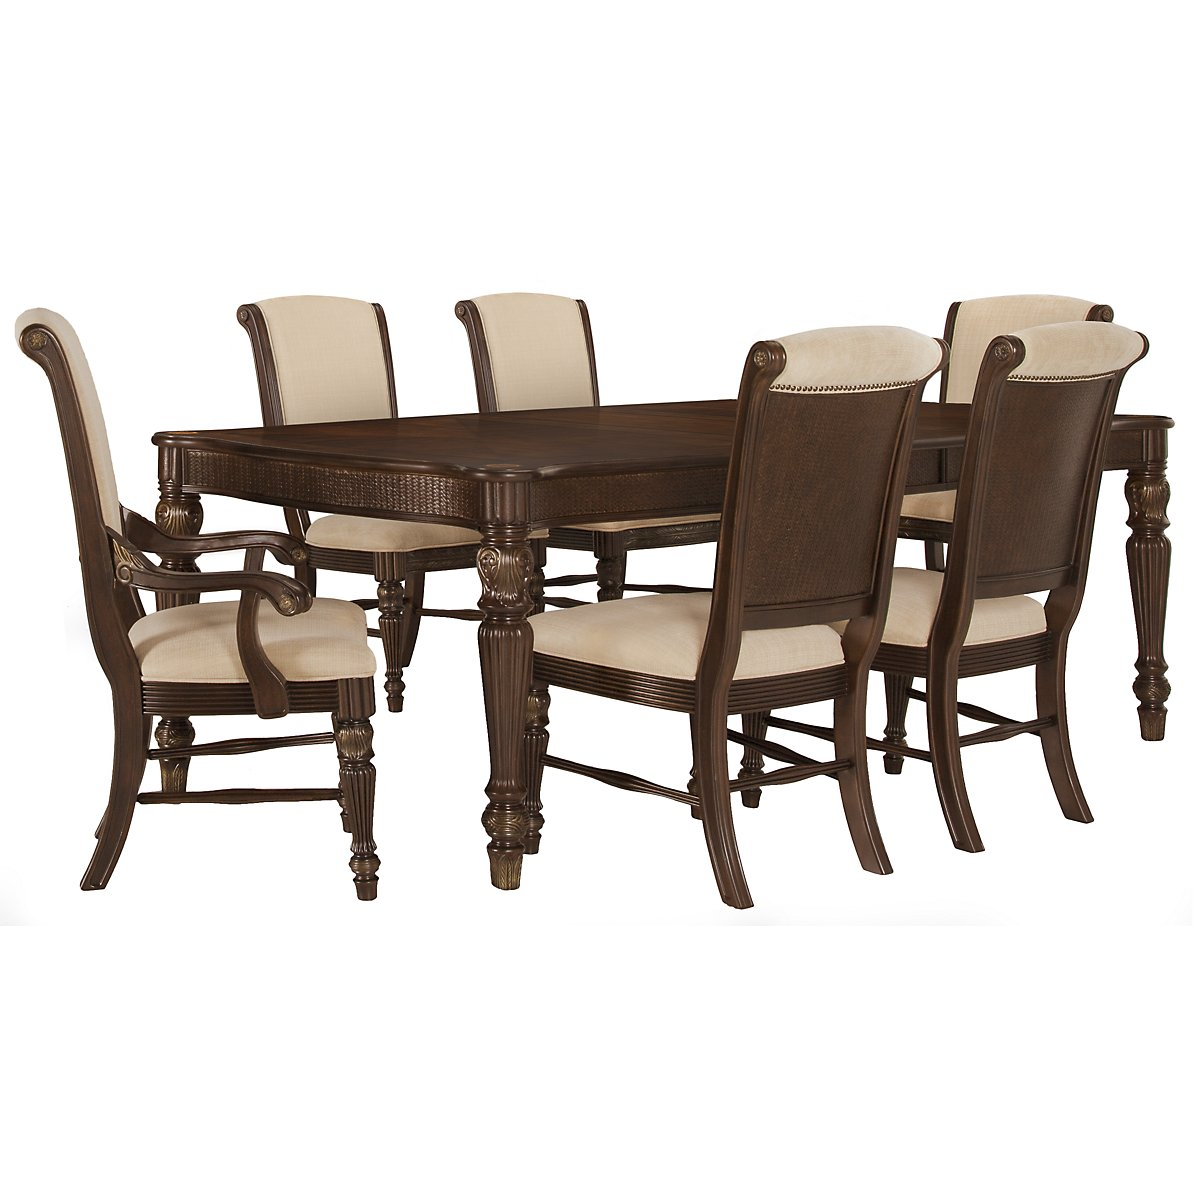 Tradewinds Dark Tone Table & 4 Upholstered Chairs